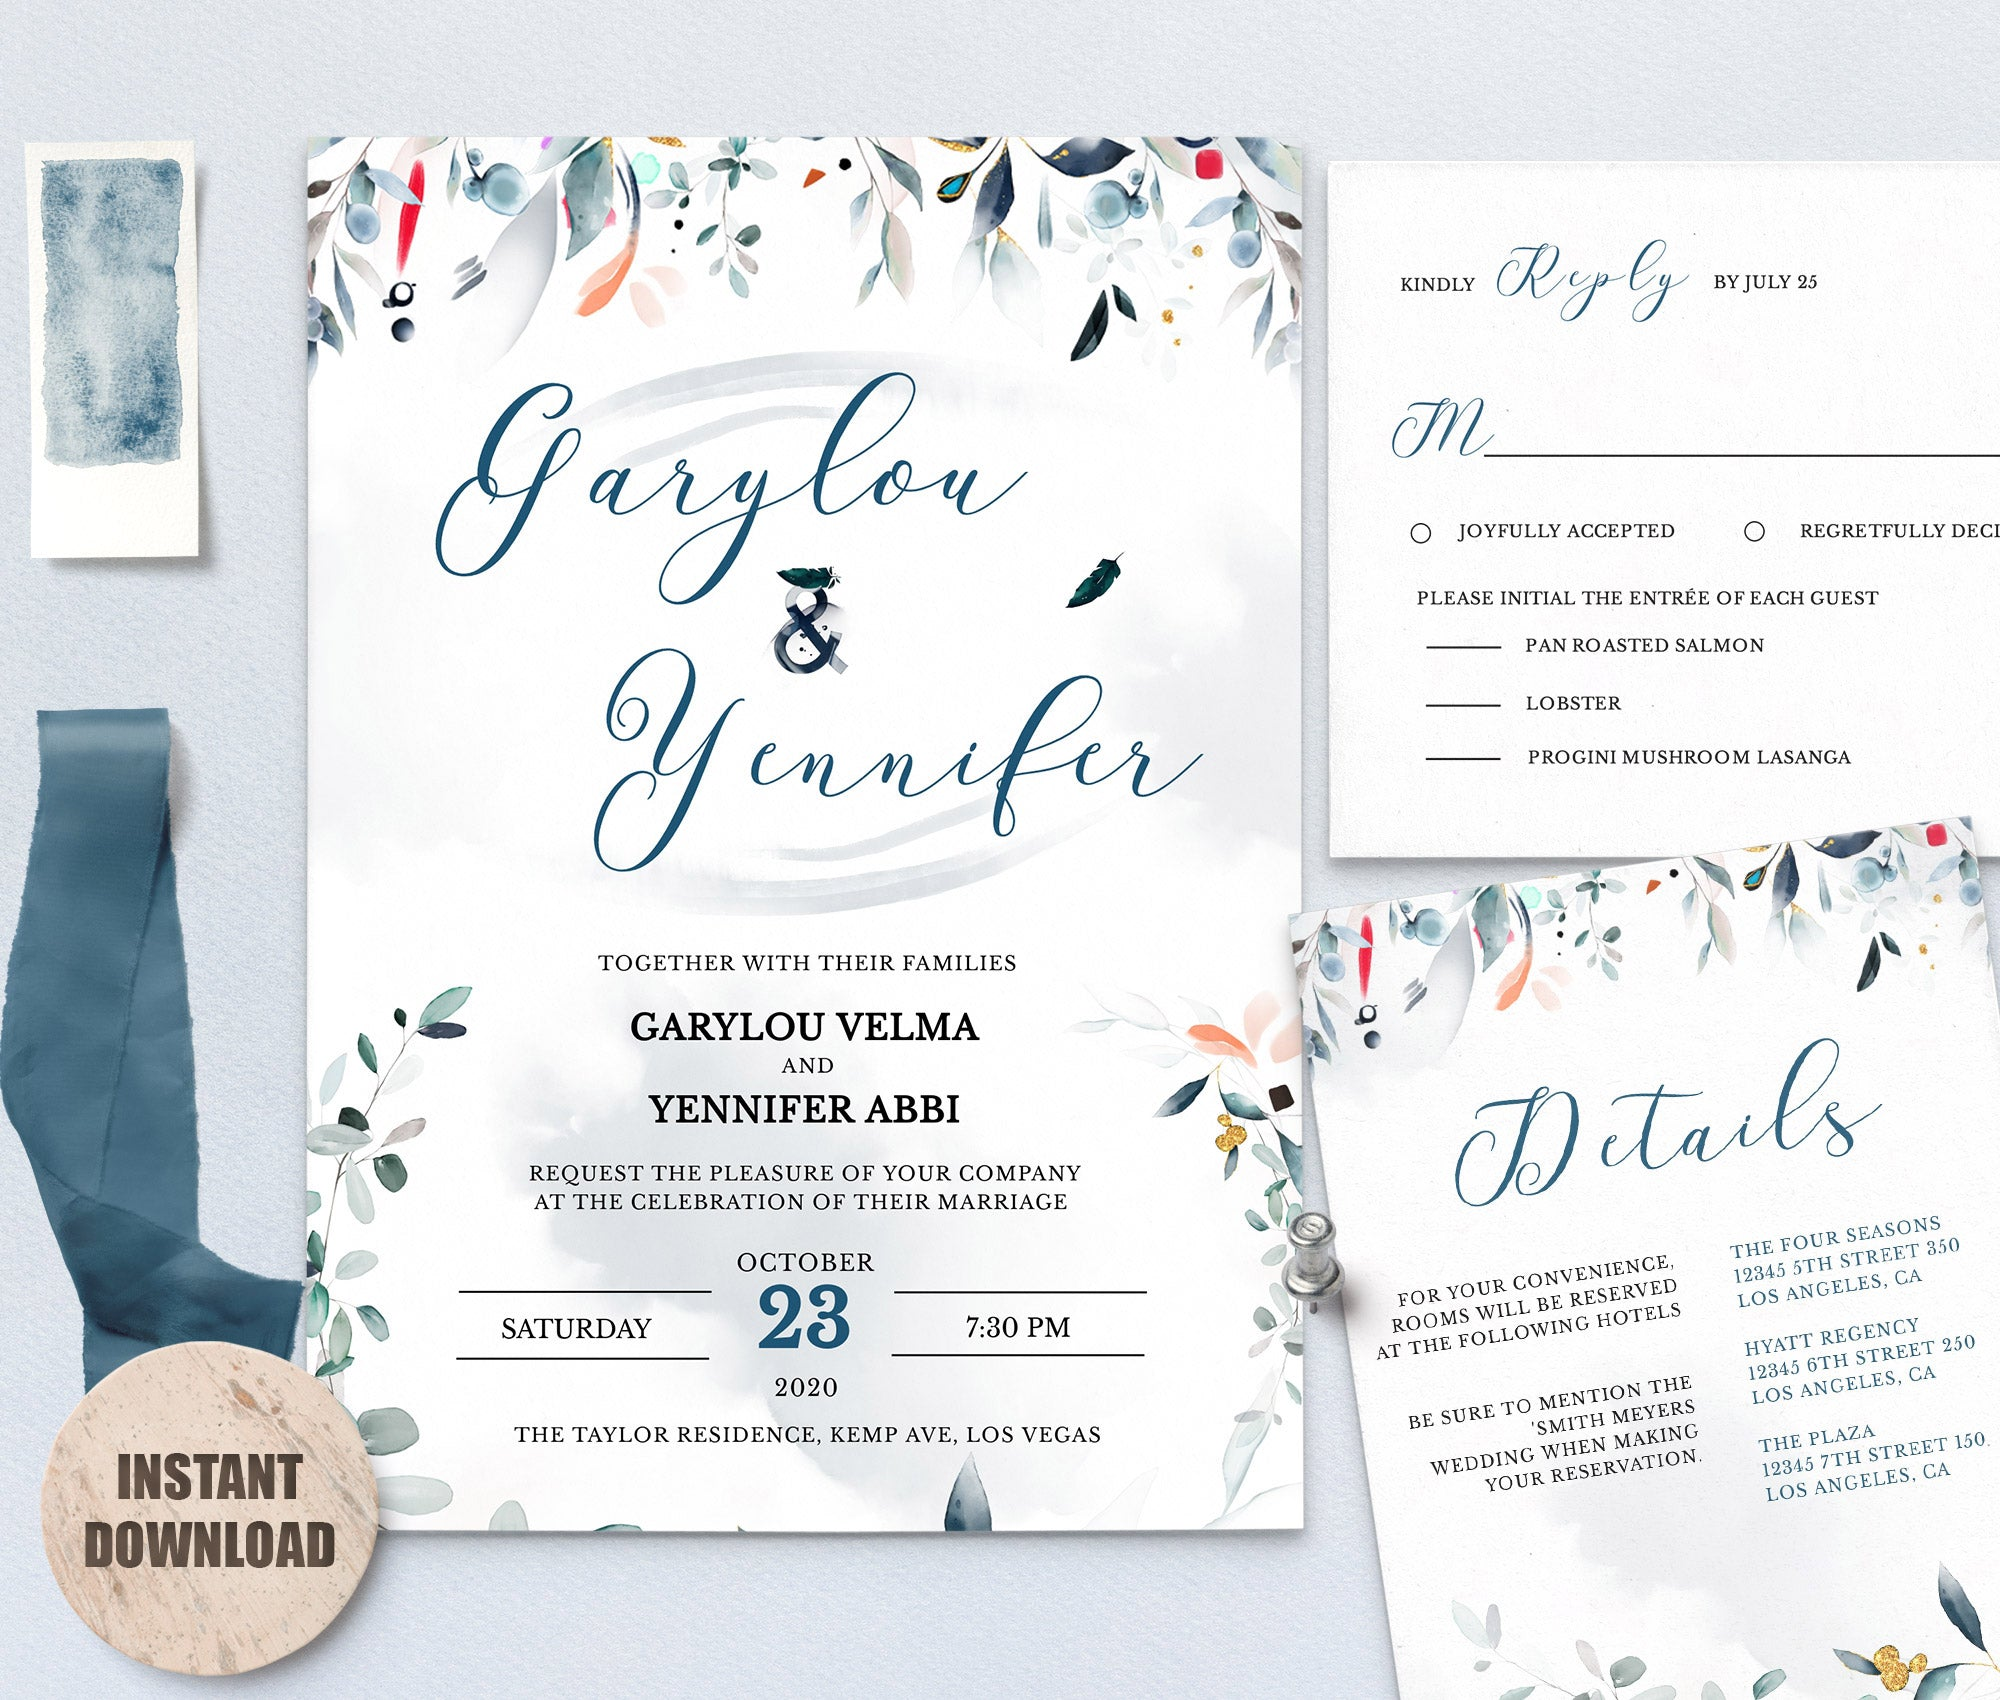 SPMR - Wedding Template Bundles set 4 - Greenlanderdesign